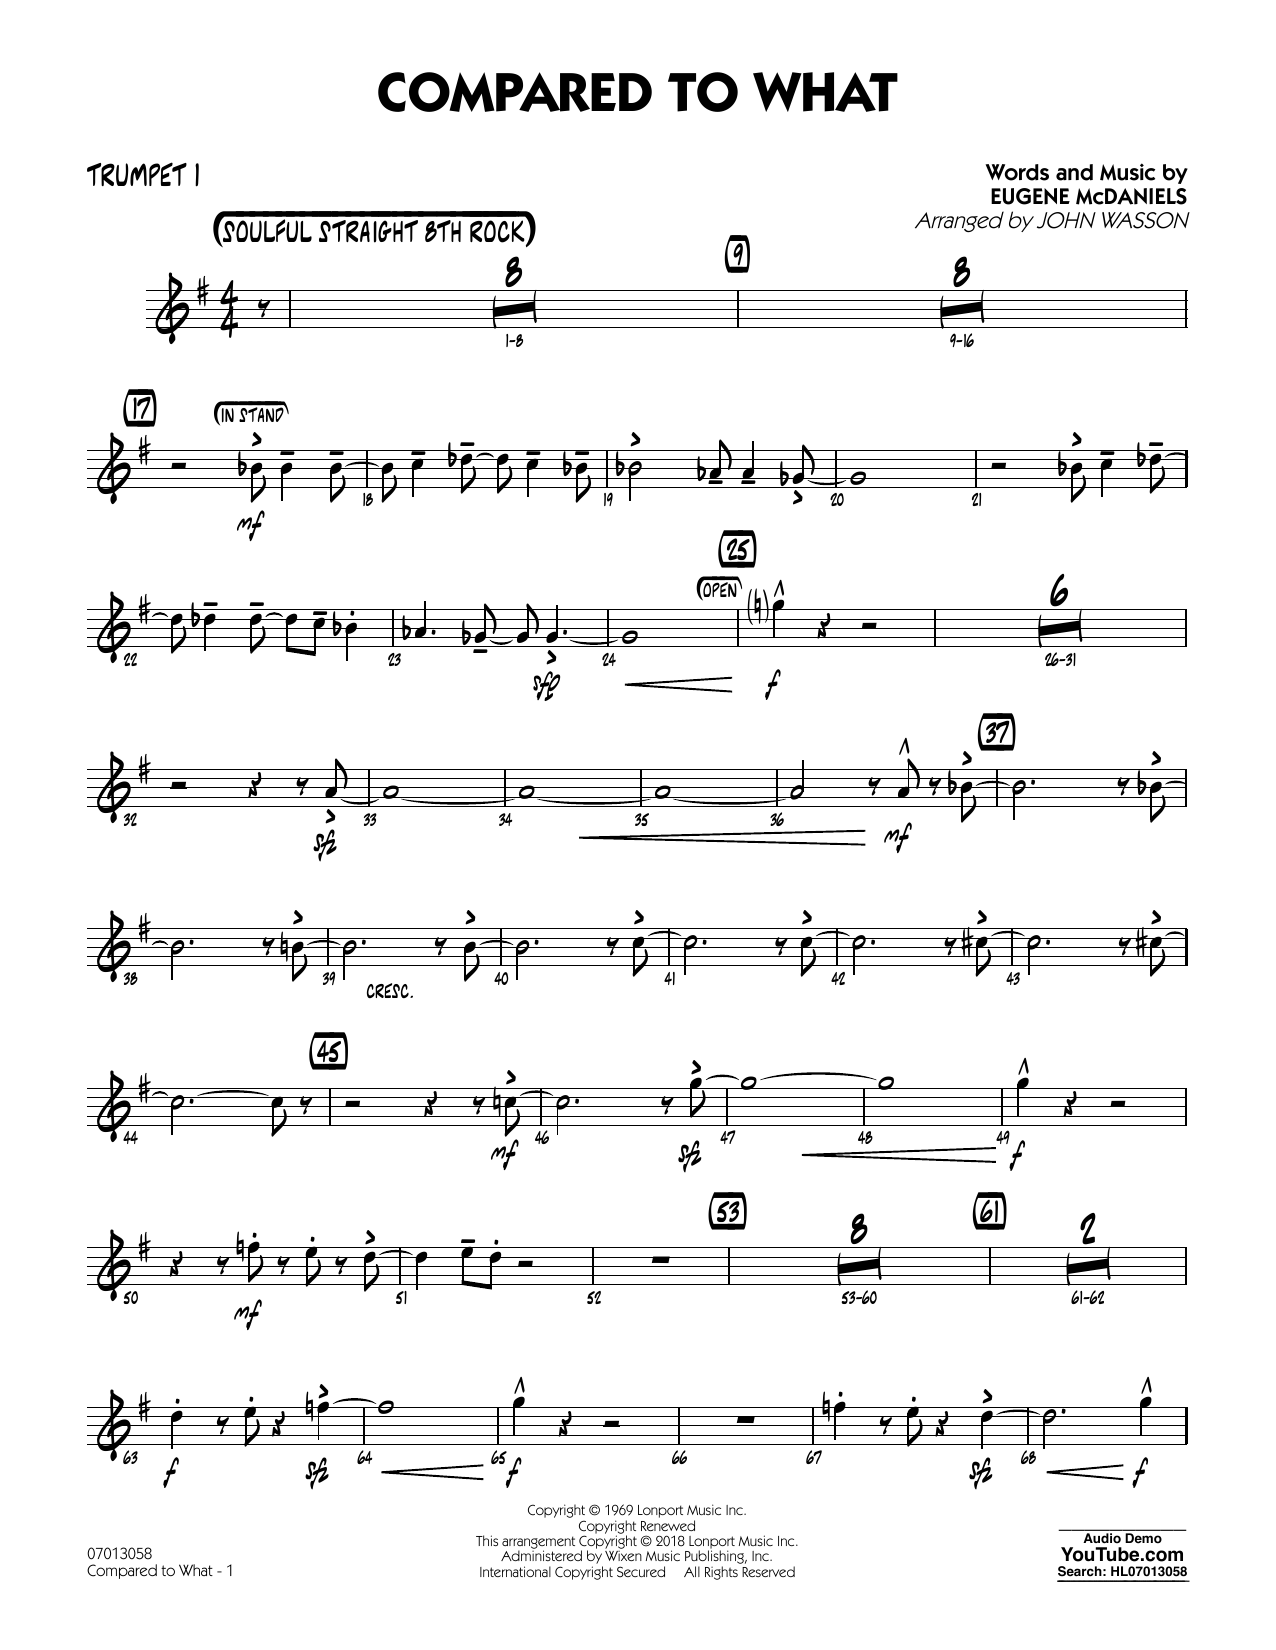 John Wasson Compared To What - Trumpet 1 sheet music notes and chords. Download Printable PDF.